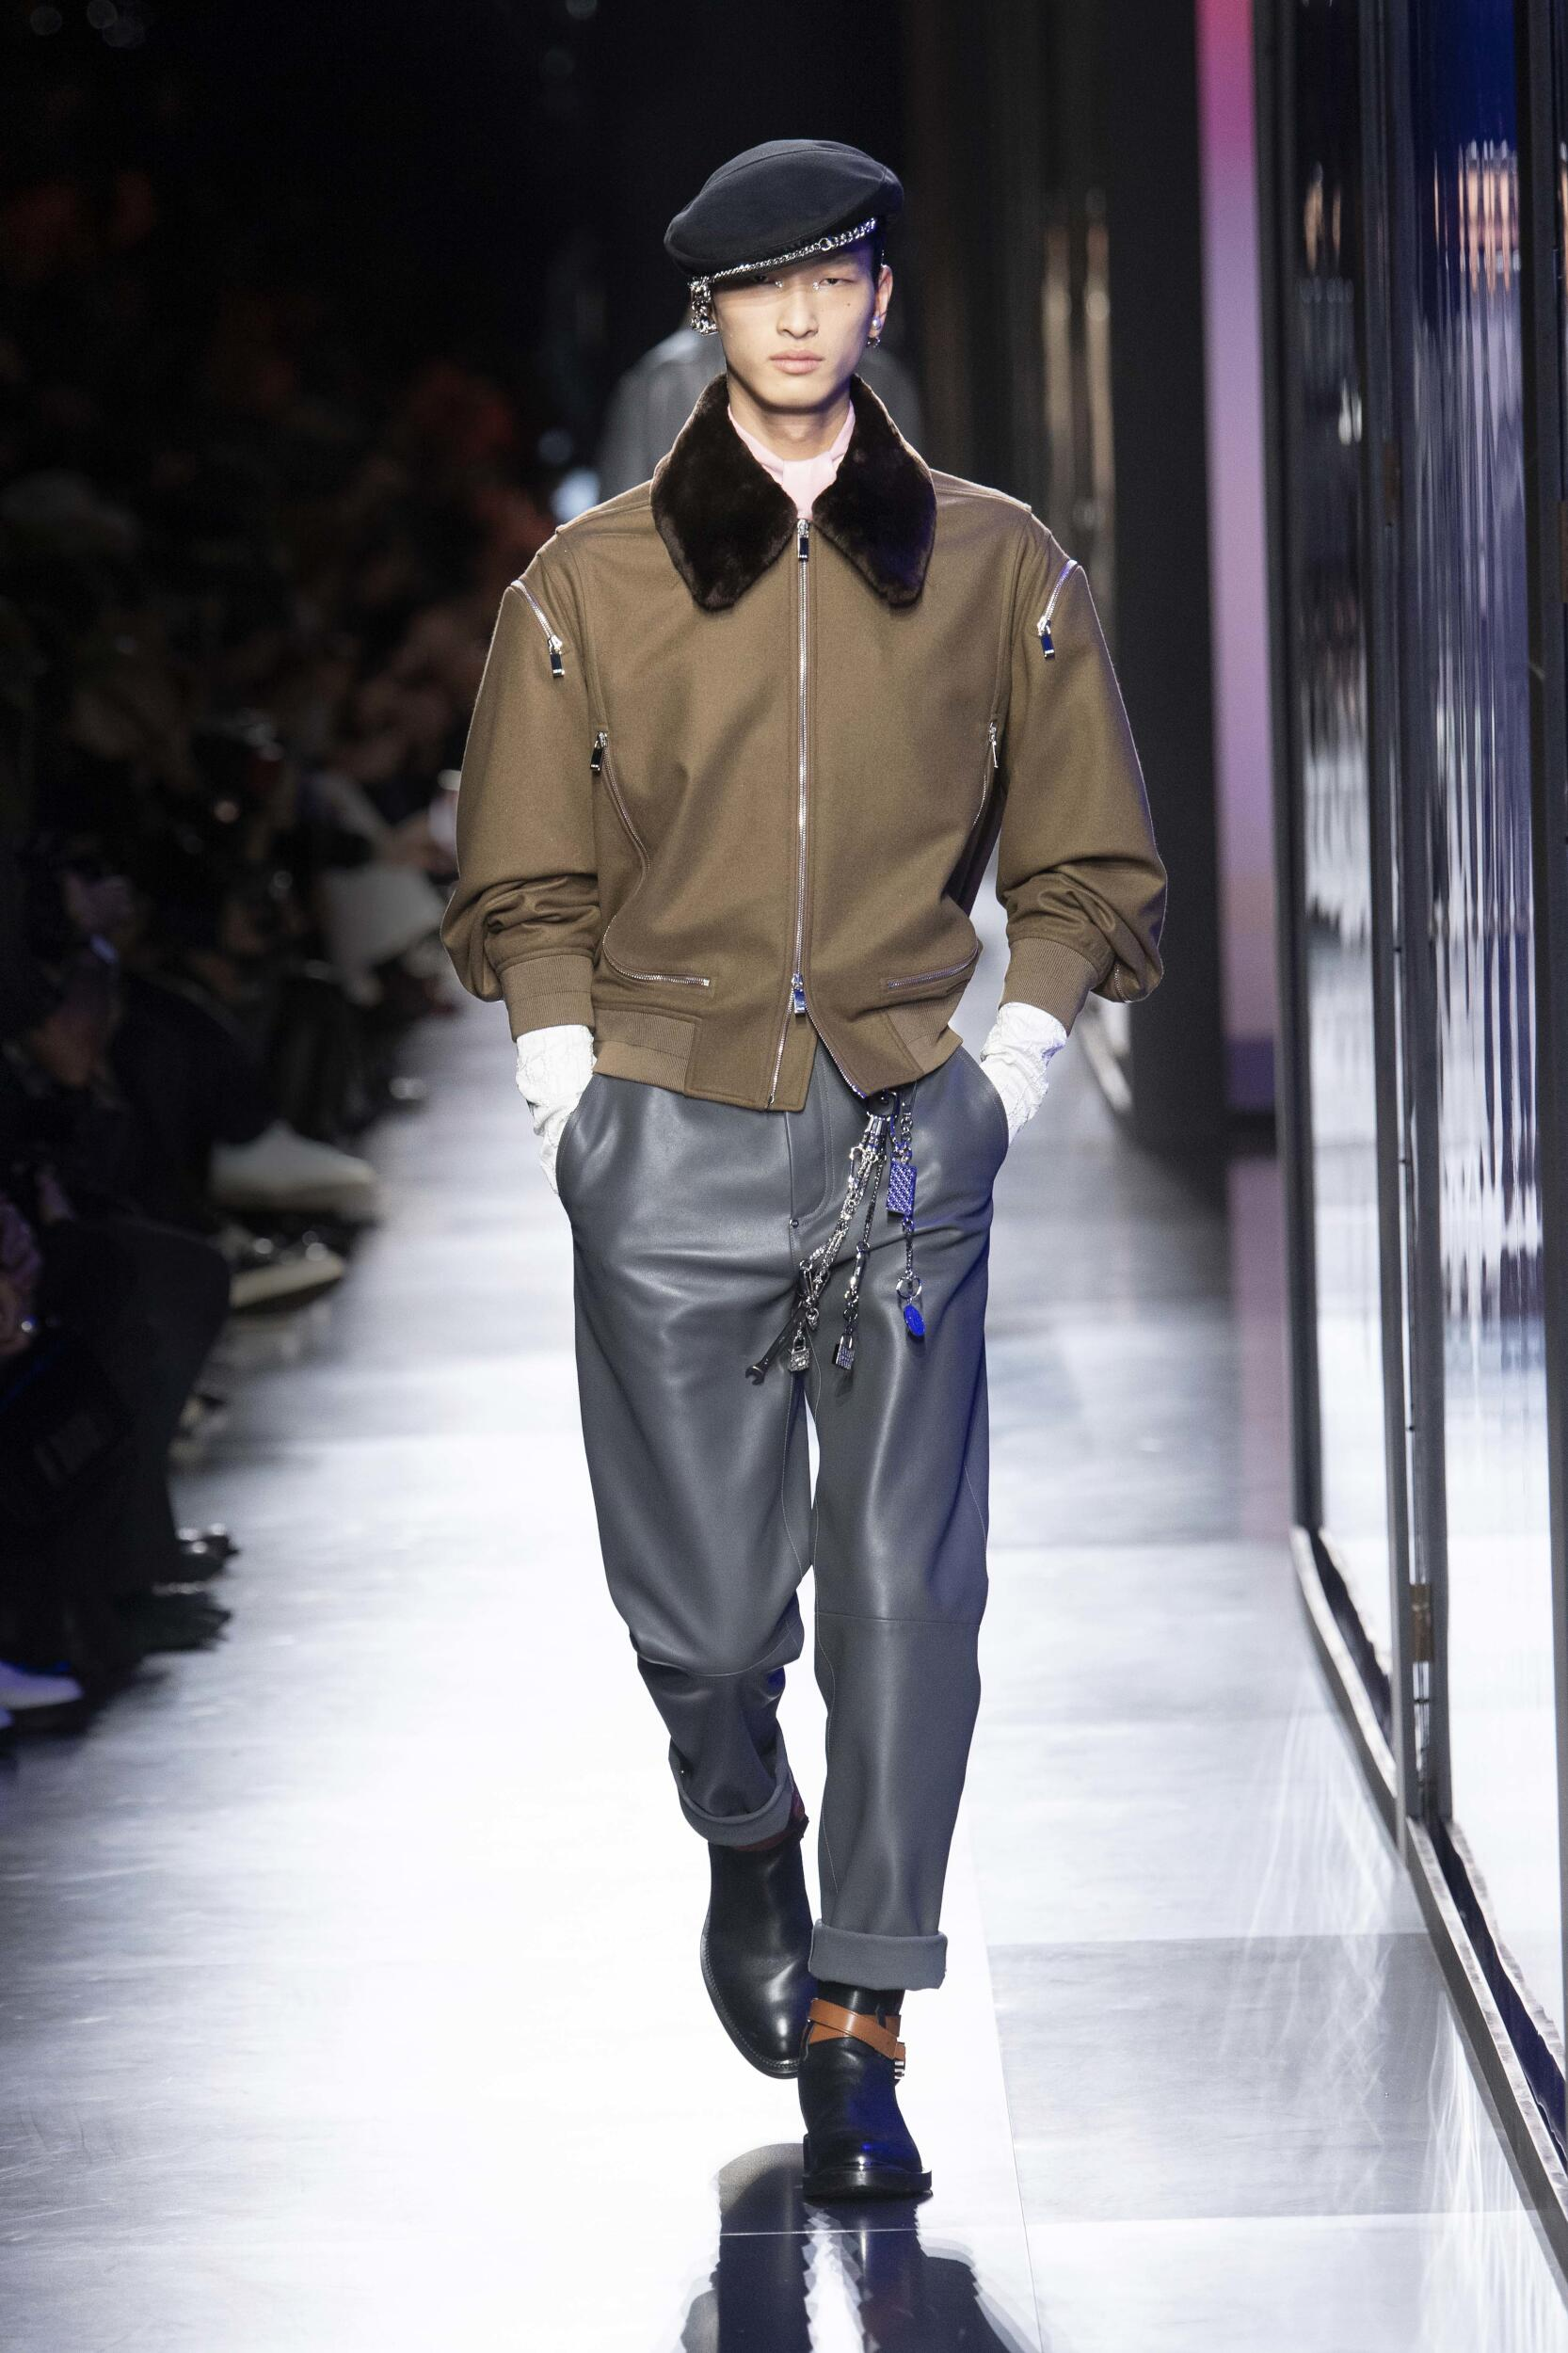 Catwalk Dior Men Fashion Show Winter 2020